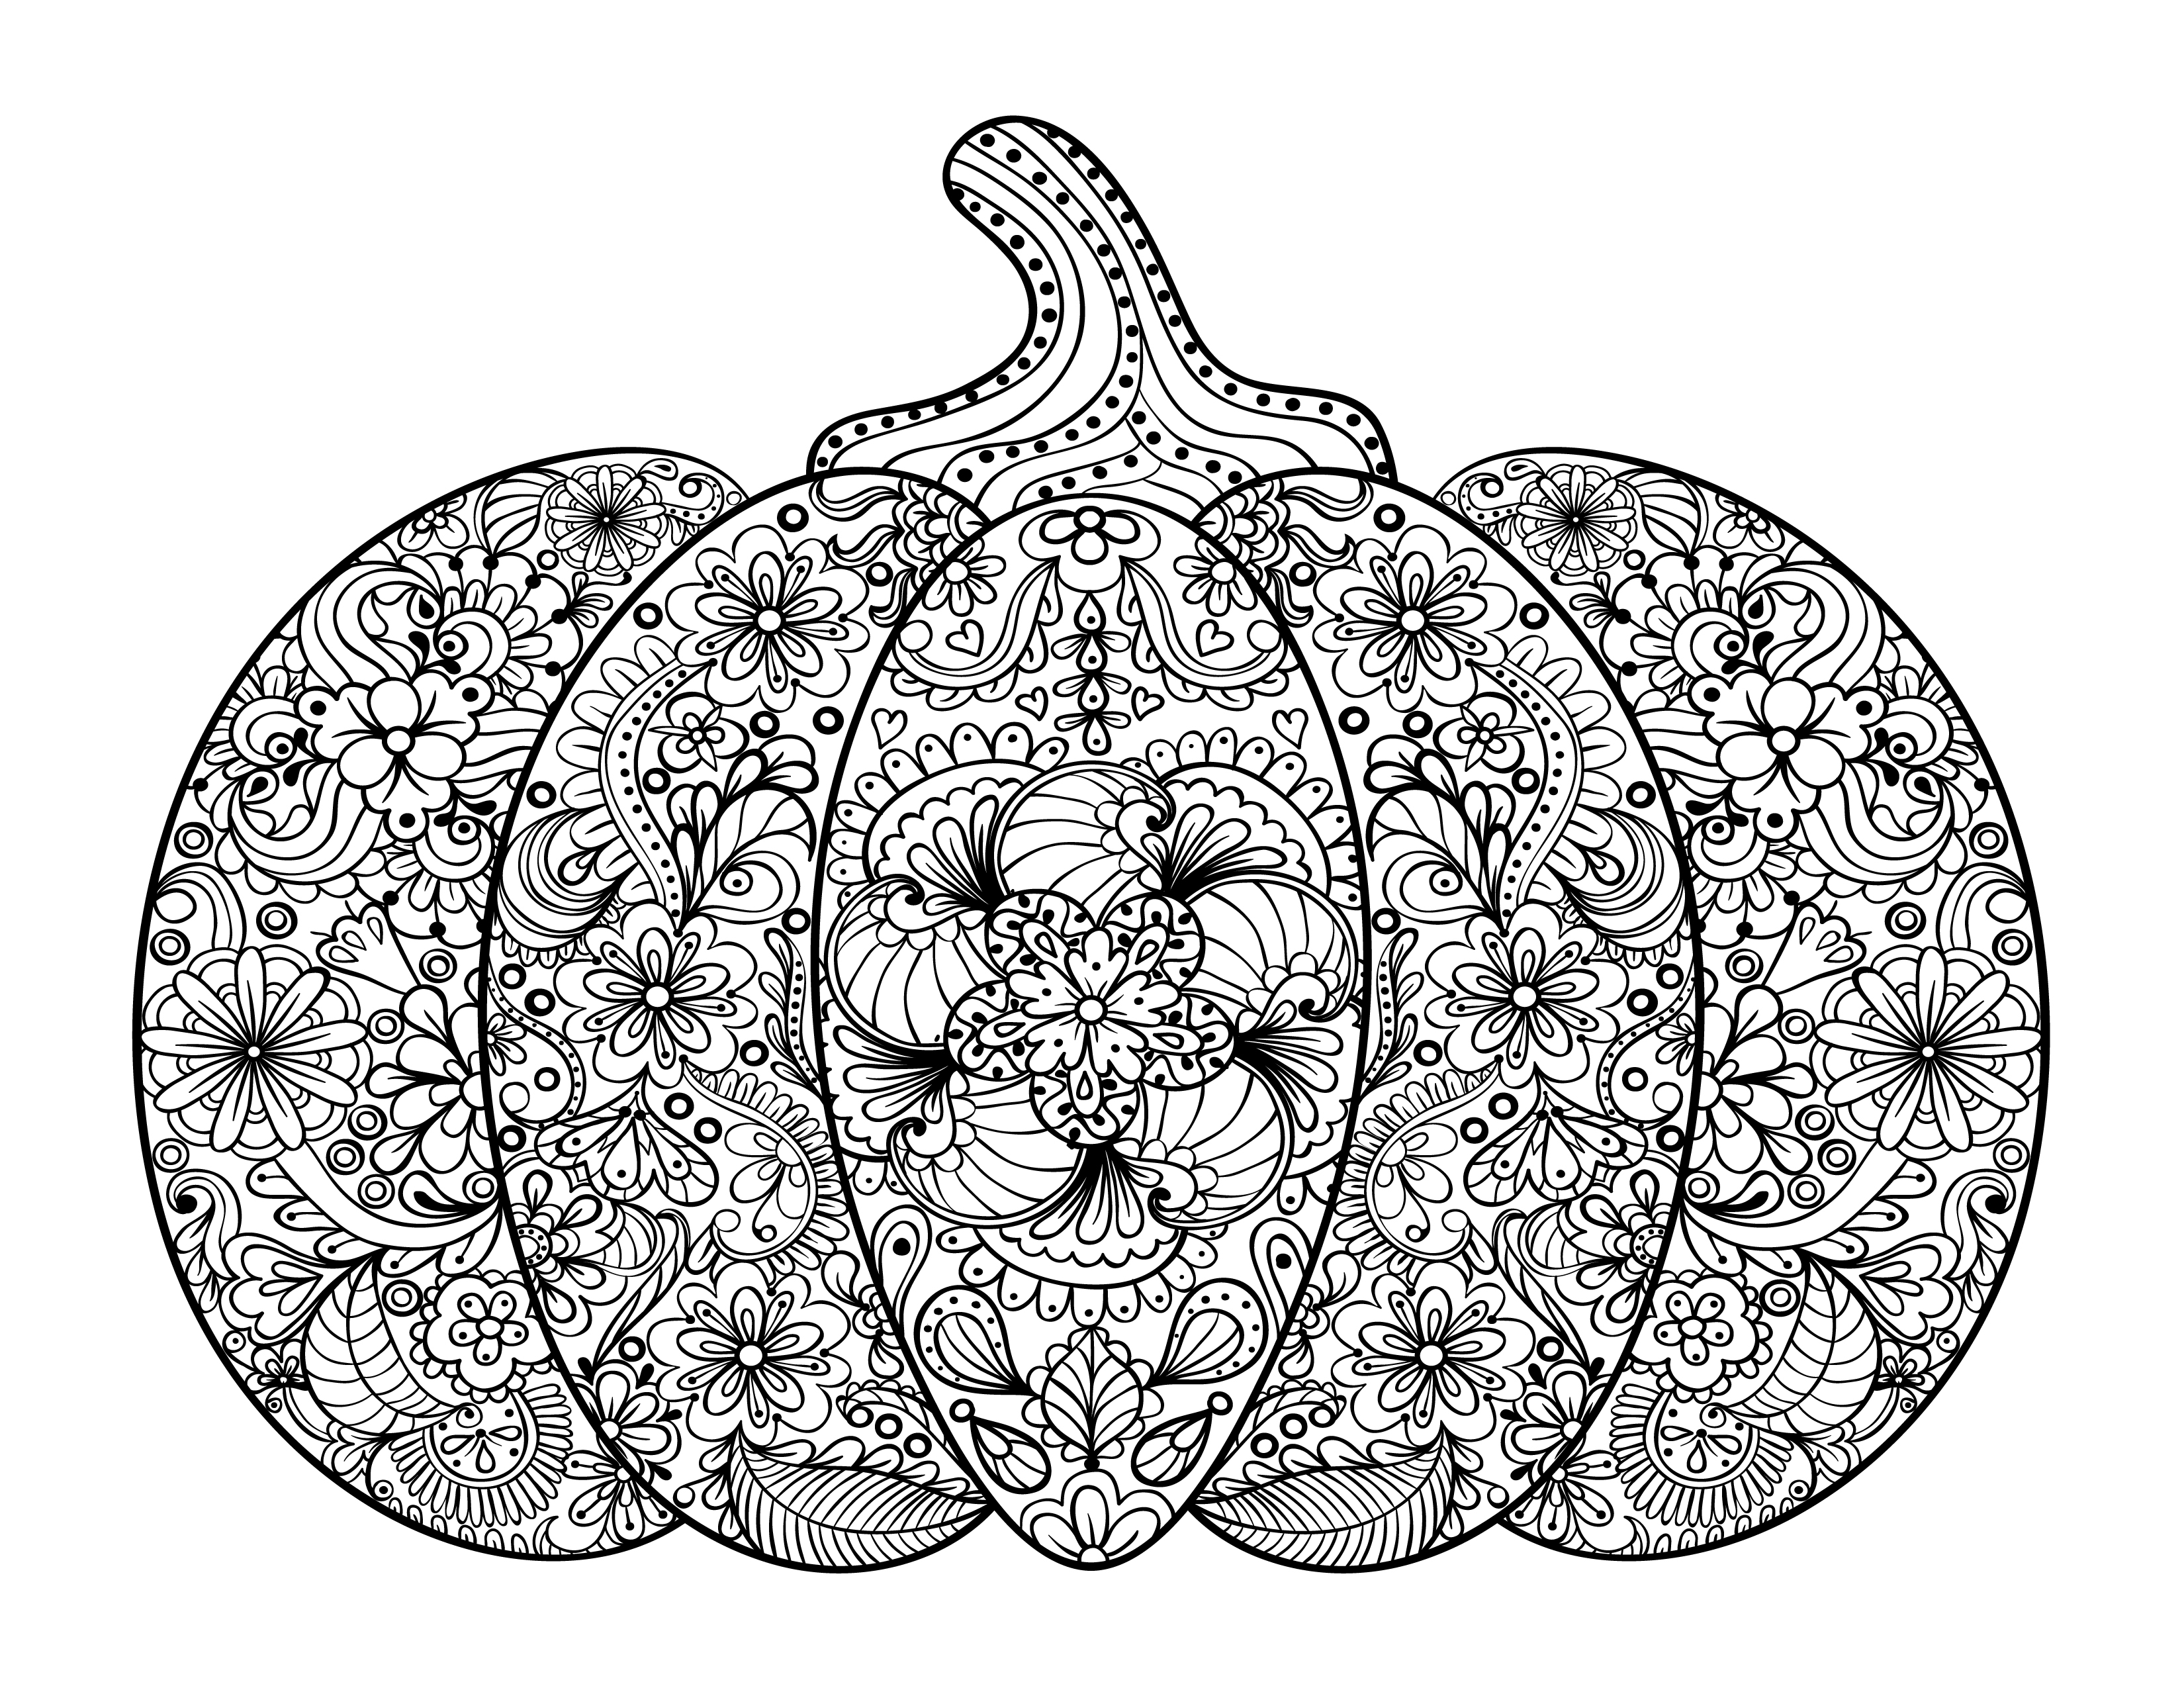 coloring pages of pumpkins free printable pumpkin coloring pages for kids pages pumpkins coloring of